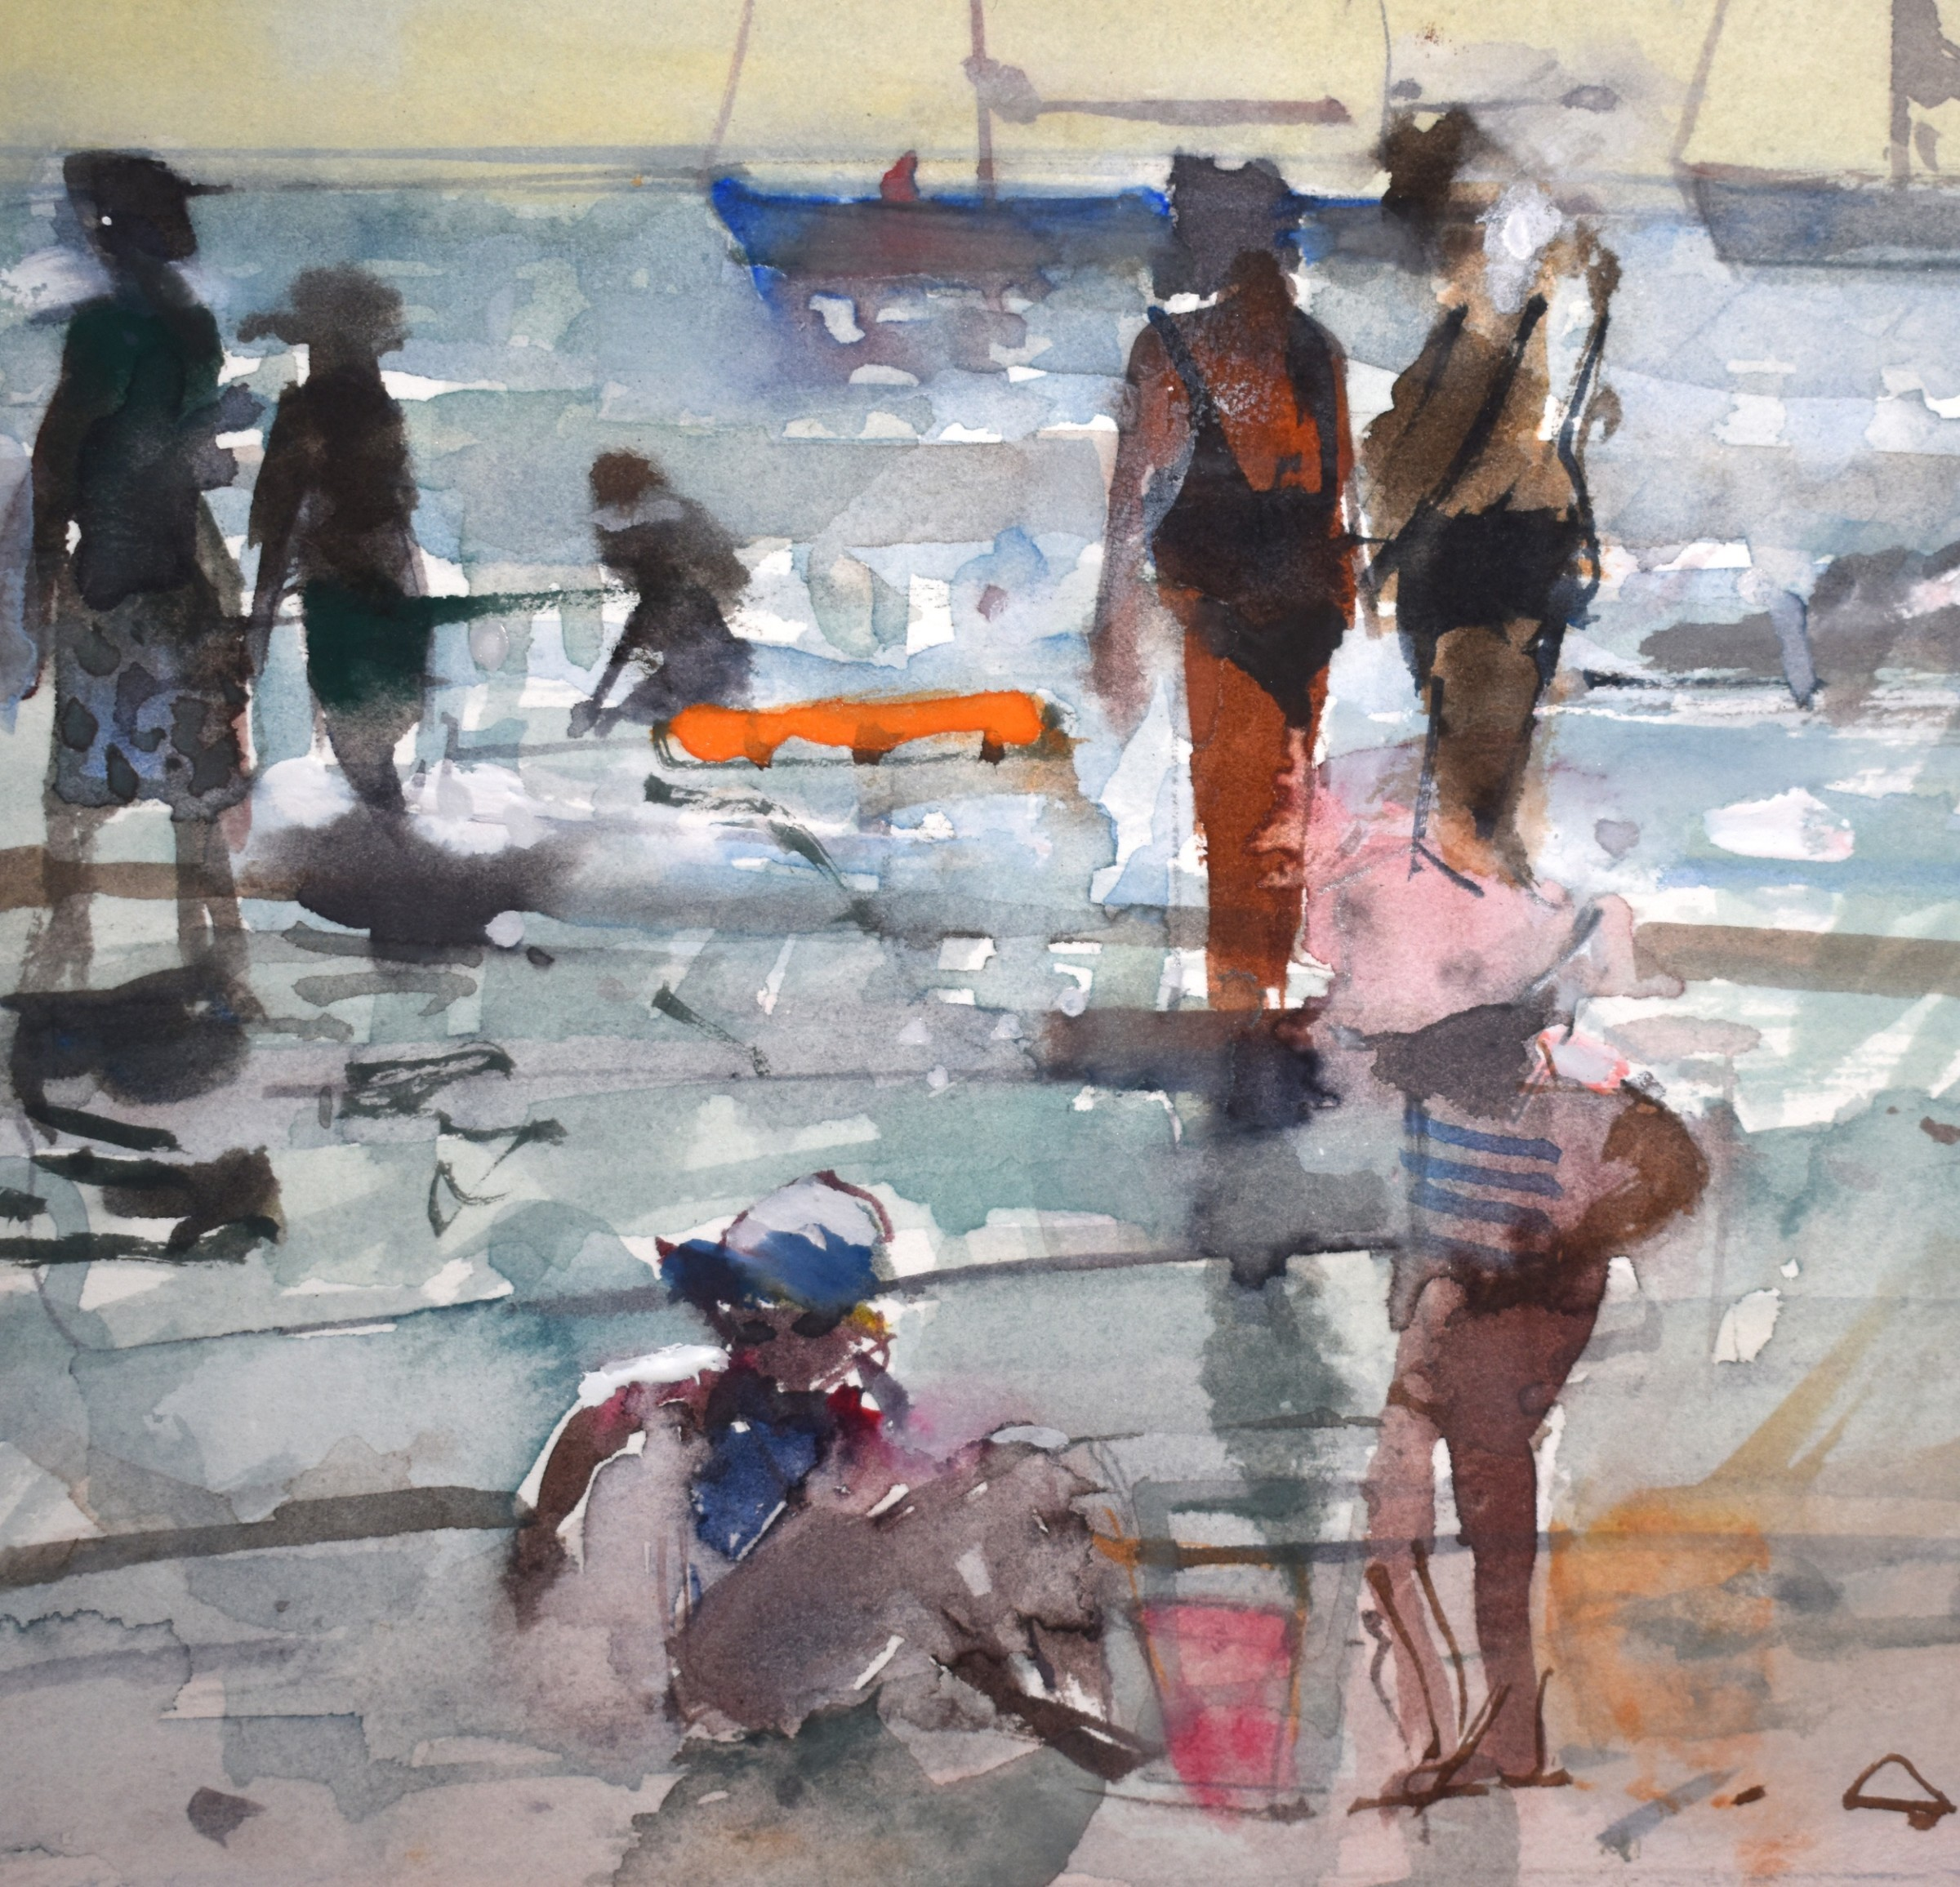 """<span class=""""link fancybox-details-link""""><a href=""""/artists/92-richard-pikesley/works/12285-richard-pikesley-bathers-and-boats-lyme-regis/"""">View Detail Page</a></span><div class=""""artist""""><span class=""""artist""""><strong>Richard Pikesley</strong></span></div><div class=""""title""""><em>Bathers and Boats, Lyme Regis</em></div><div class=""""medium"""">watercolour</div><div class=""""dimensions"""">Frame: 27.5 x 27.5 cm<br /> Artwork: 13 x 13 cm</div><div class=""""price"""">£430.00</div>"""